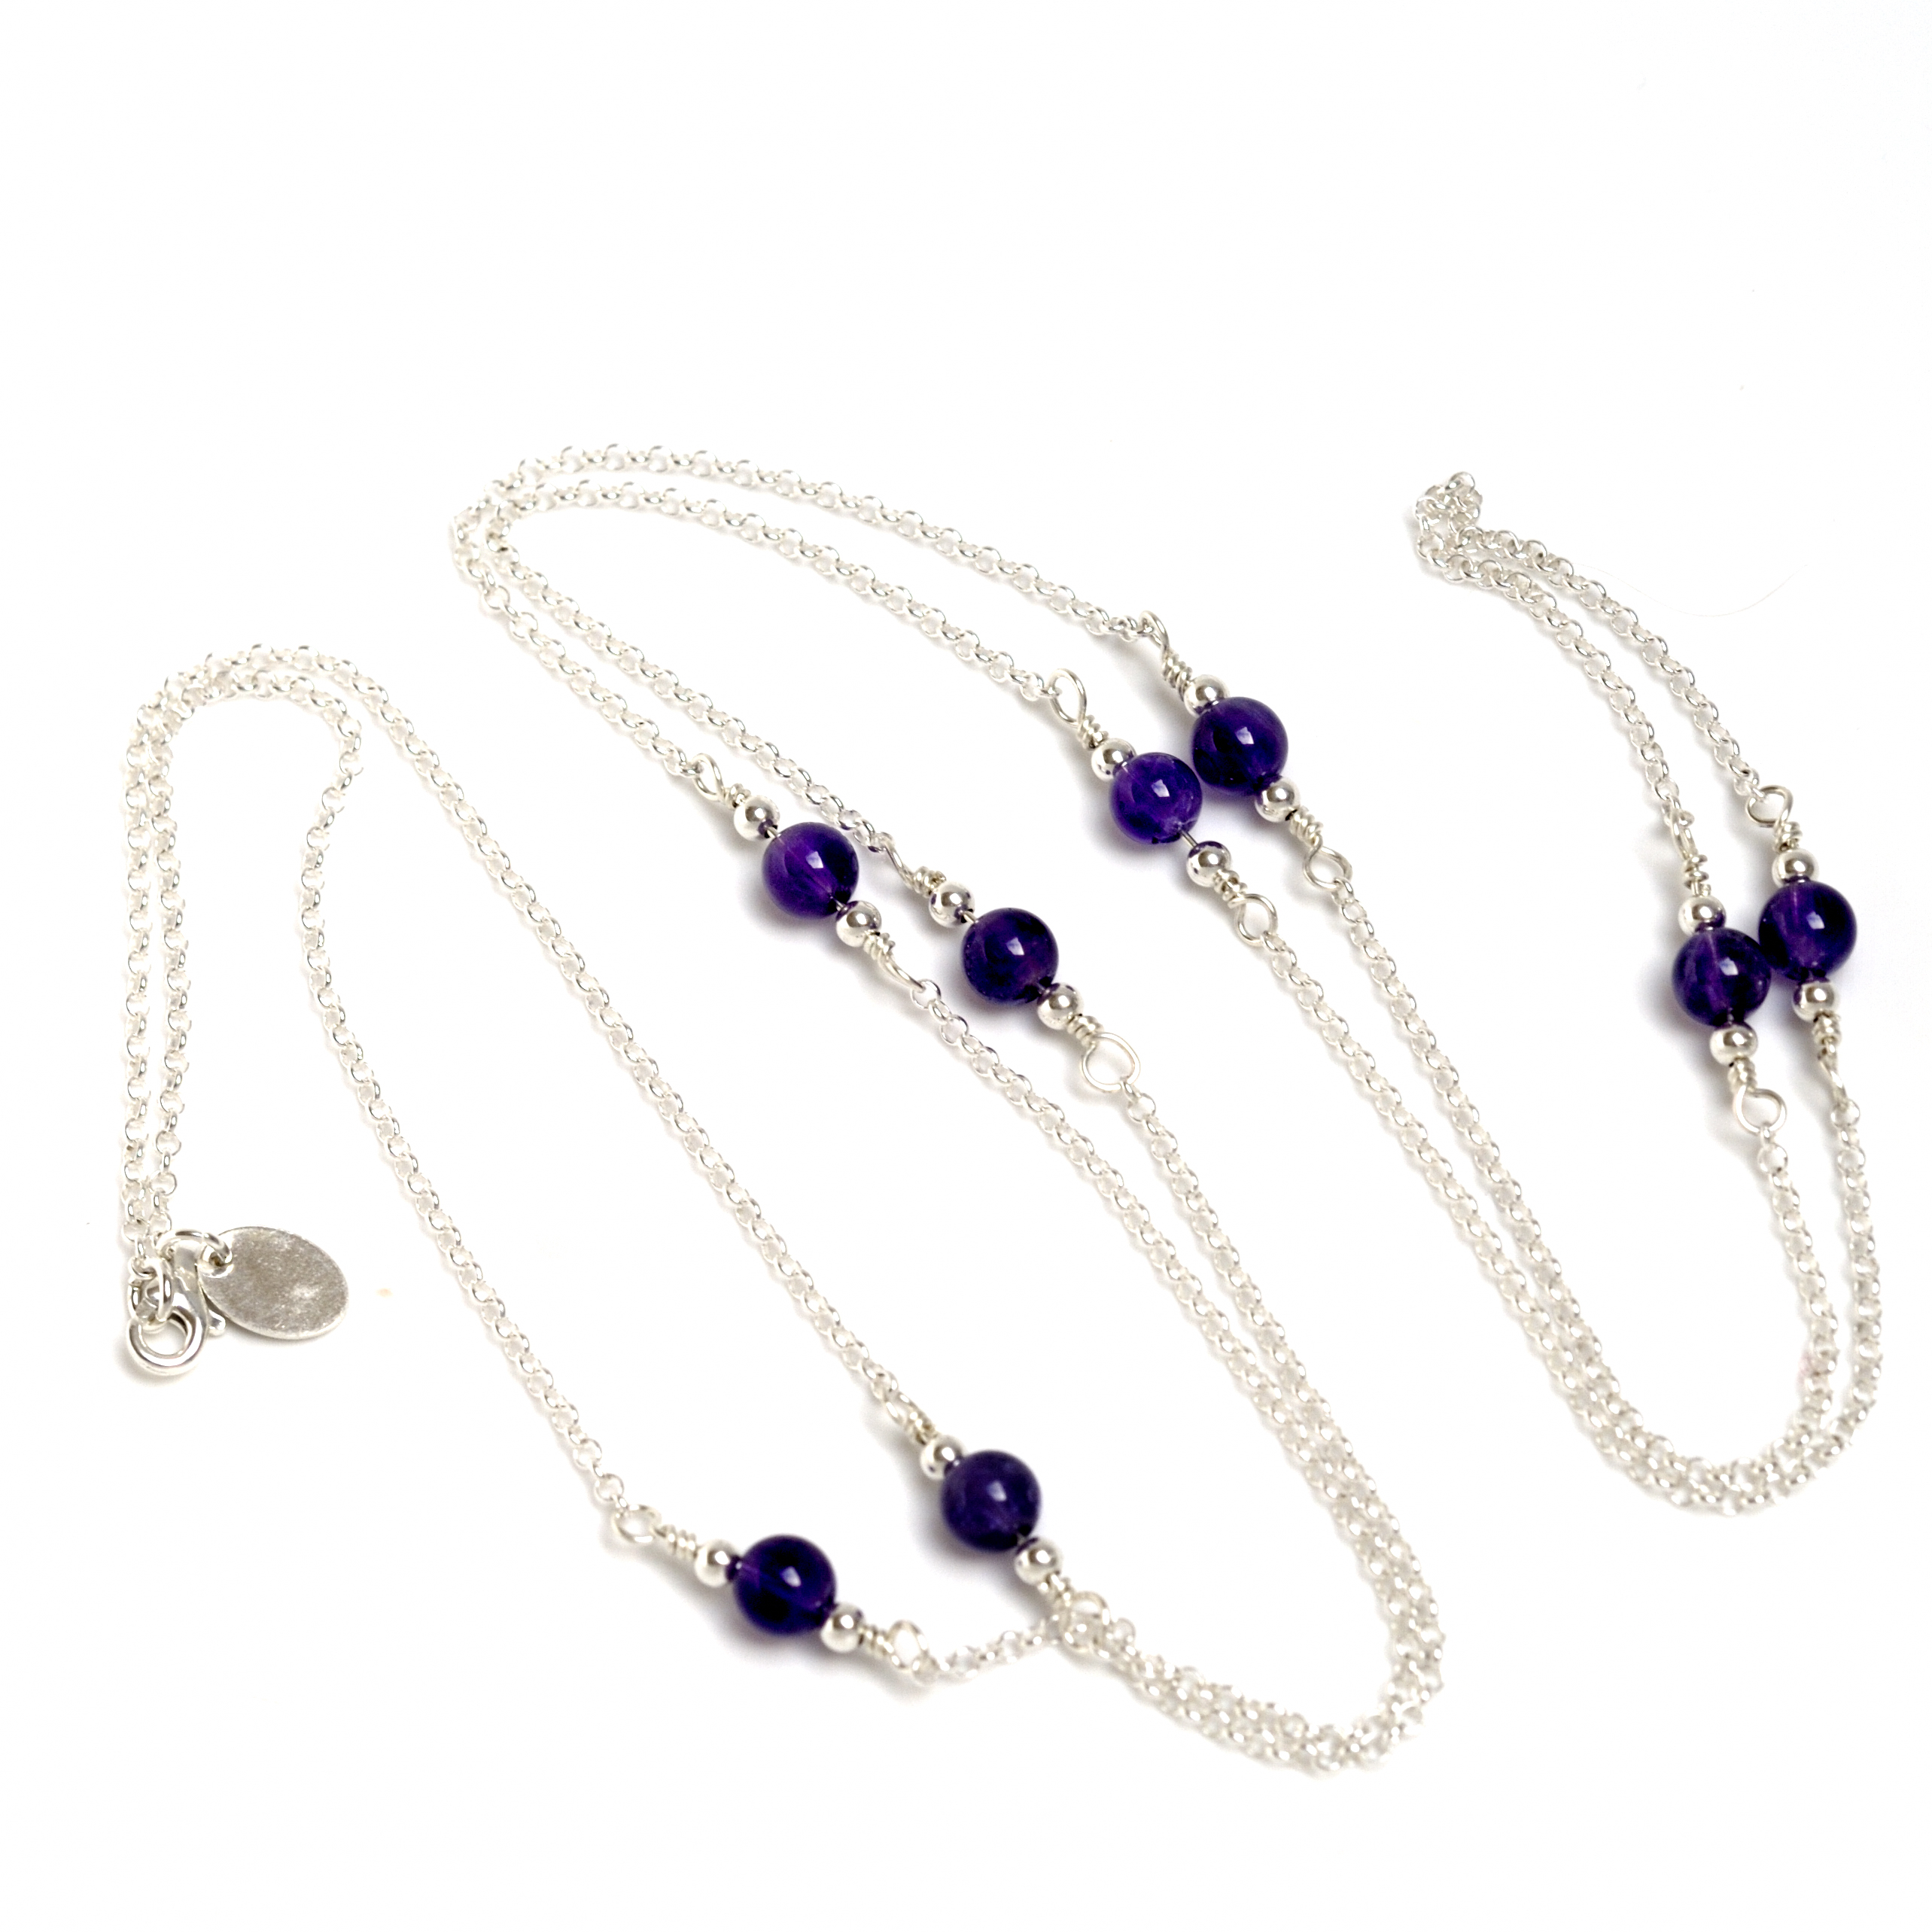 Necklace Violet by Leonor Heleno Designs